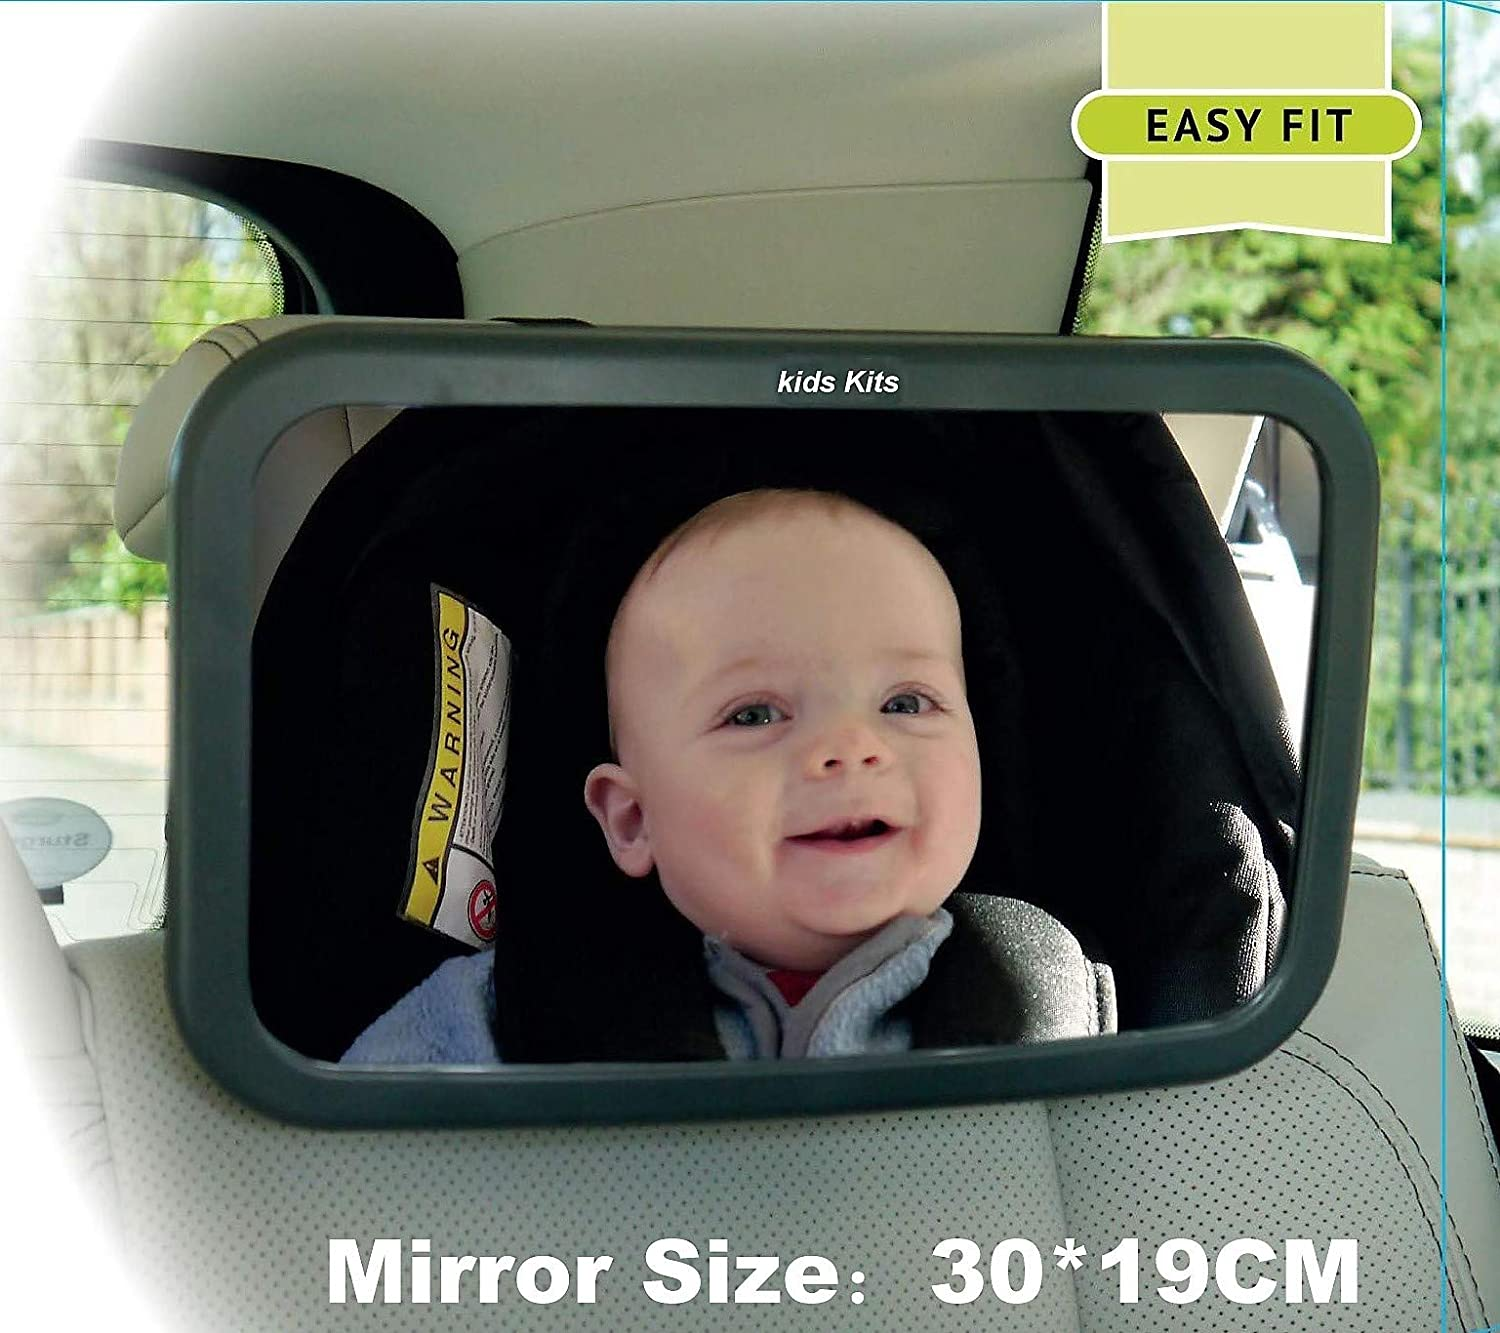 Kids Kits 360/° Rotation Tilt Function Clear View of Infant In Rear Facing Car Seat Baby Backseat Mirror 30x19cm Rear View Car Seat Secure /& 100/% Shatterproof Adjustable Straps